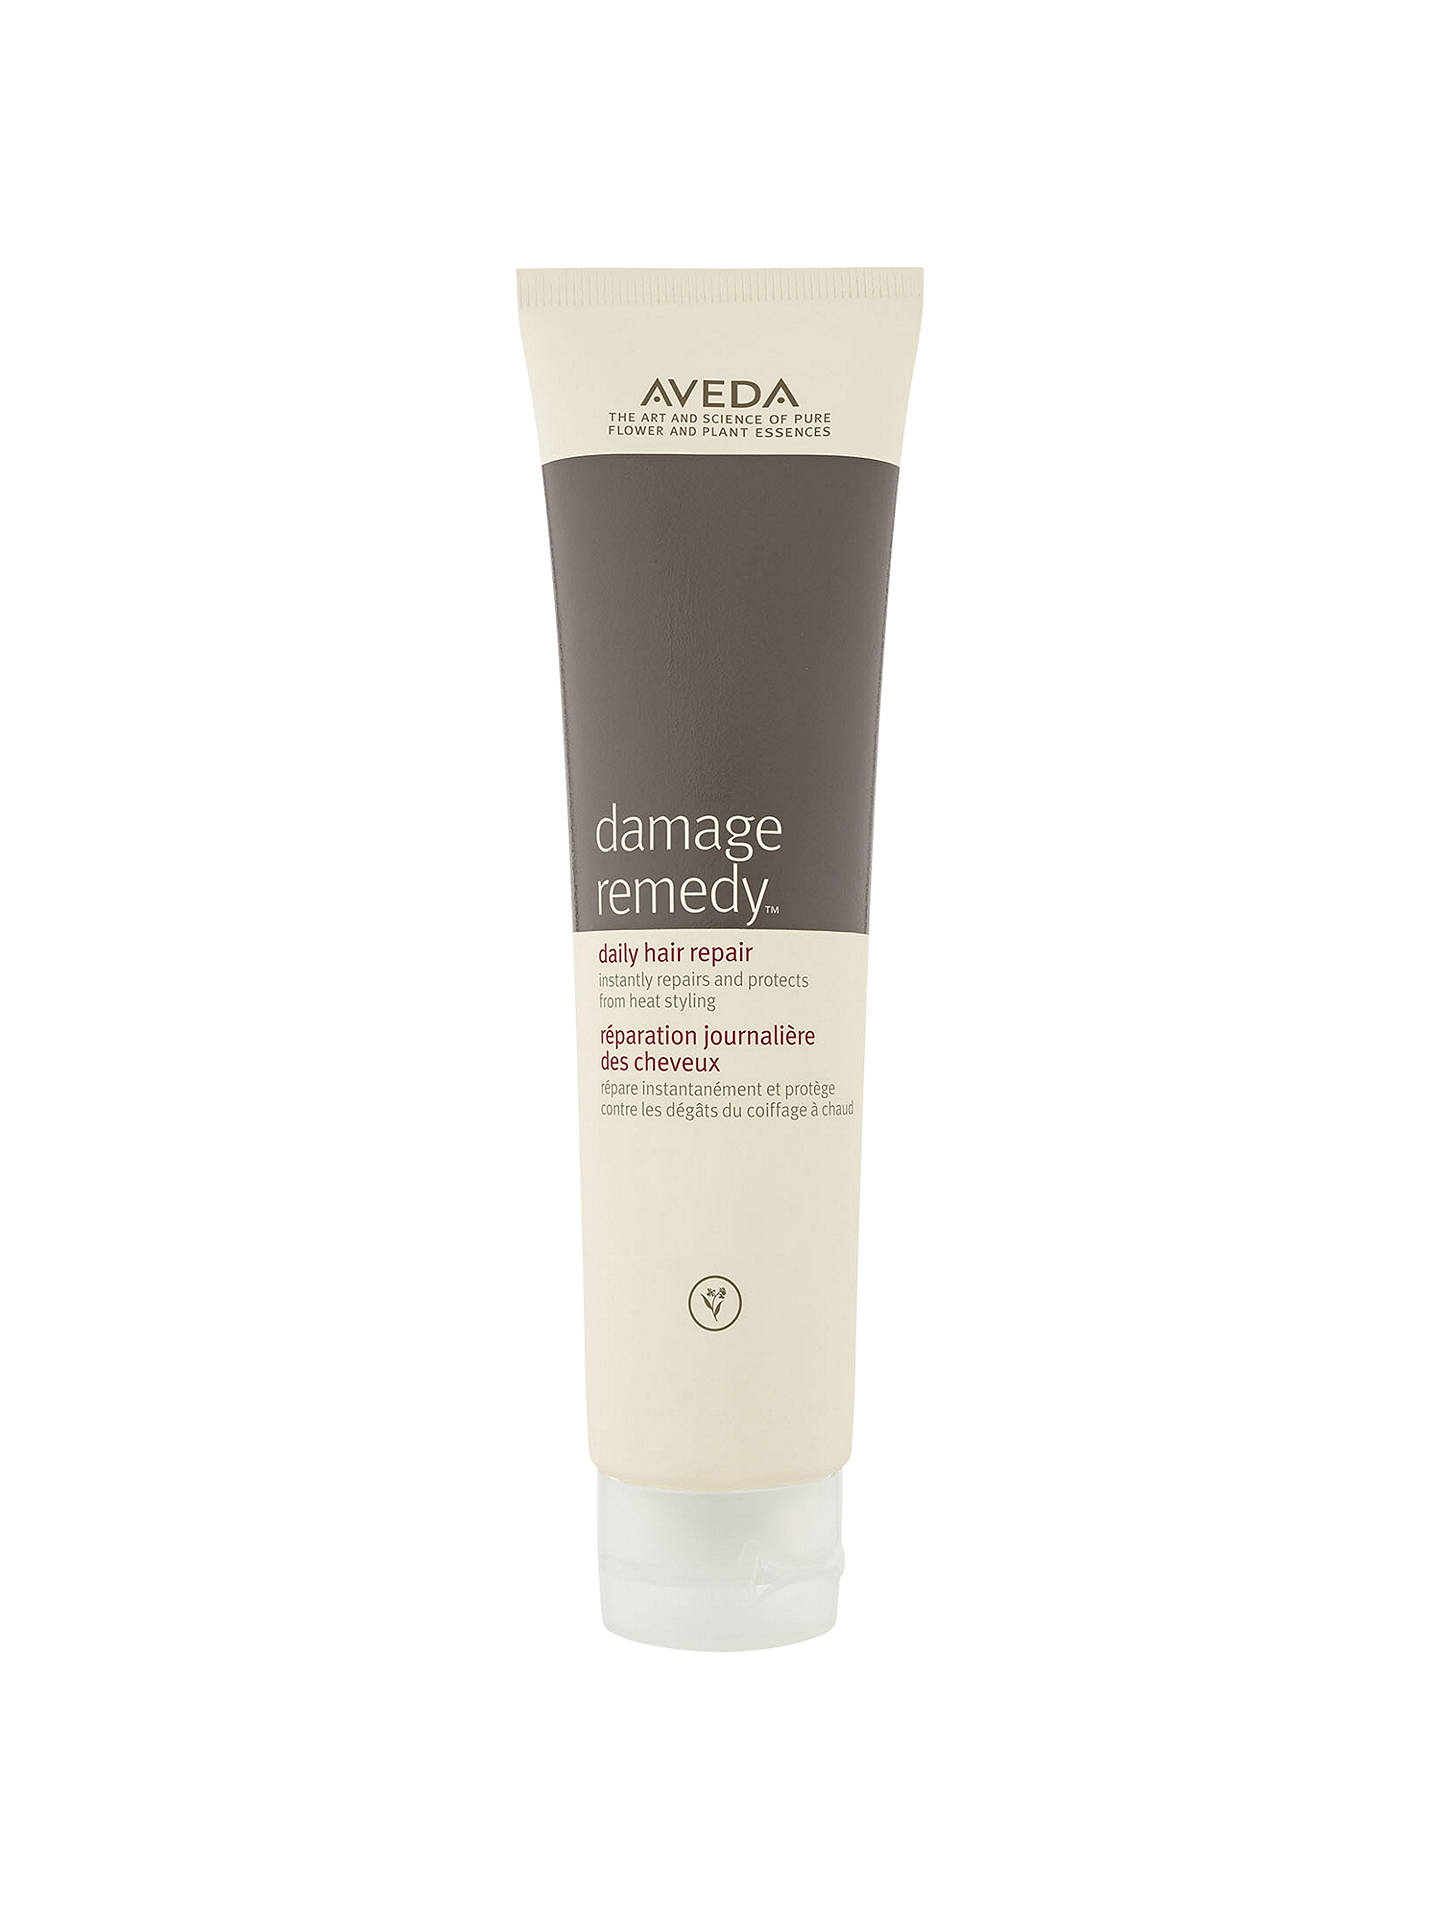 BuyAVEDA Damage Remedy™ Daily Hair Repair, 100ml Online at johnlewis.com